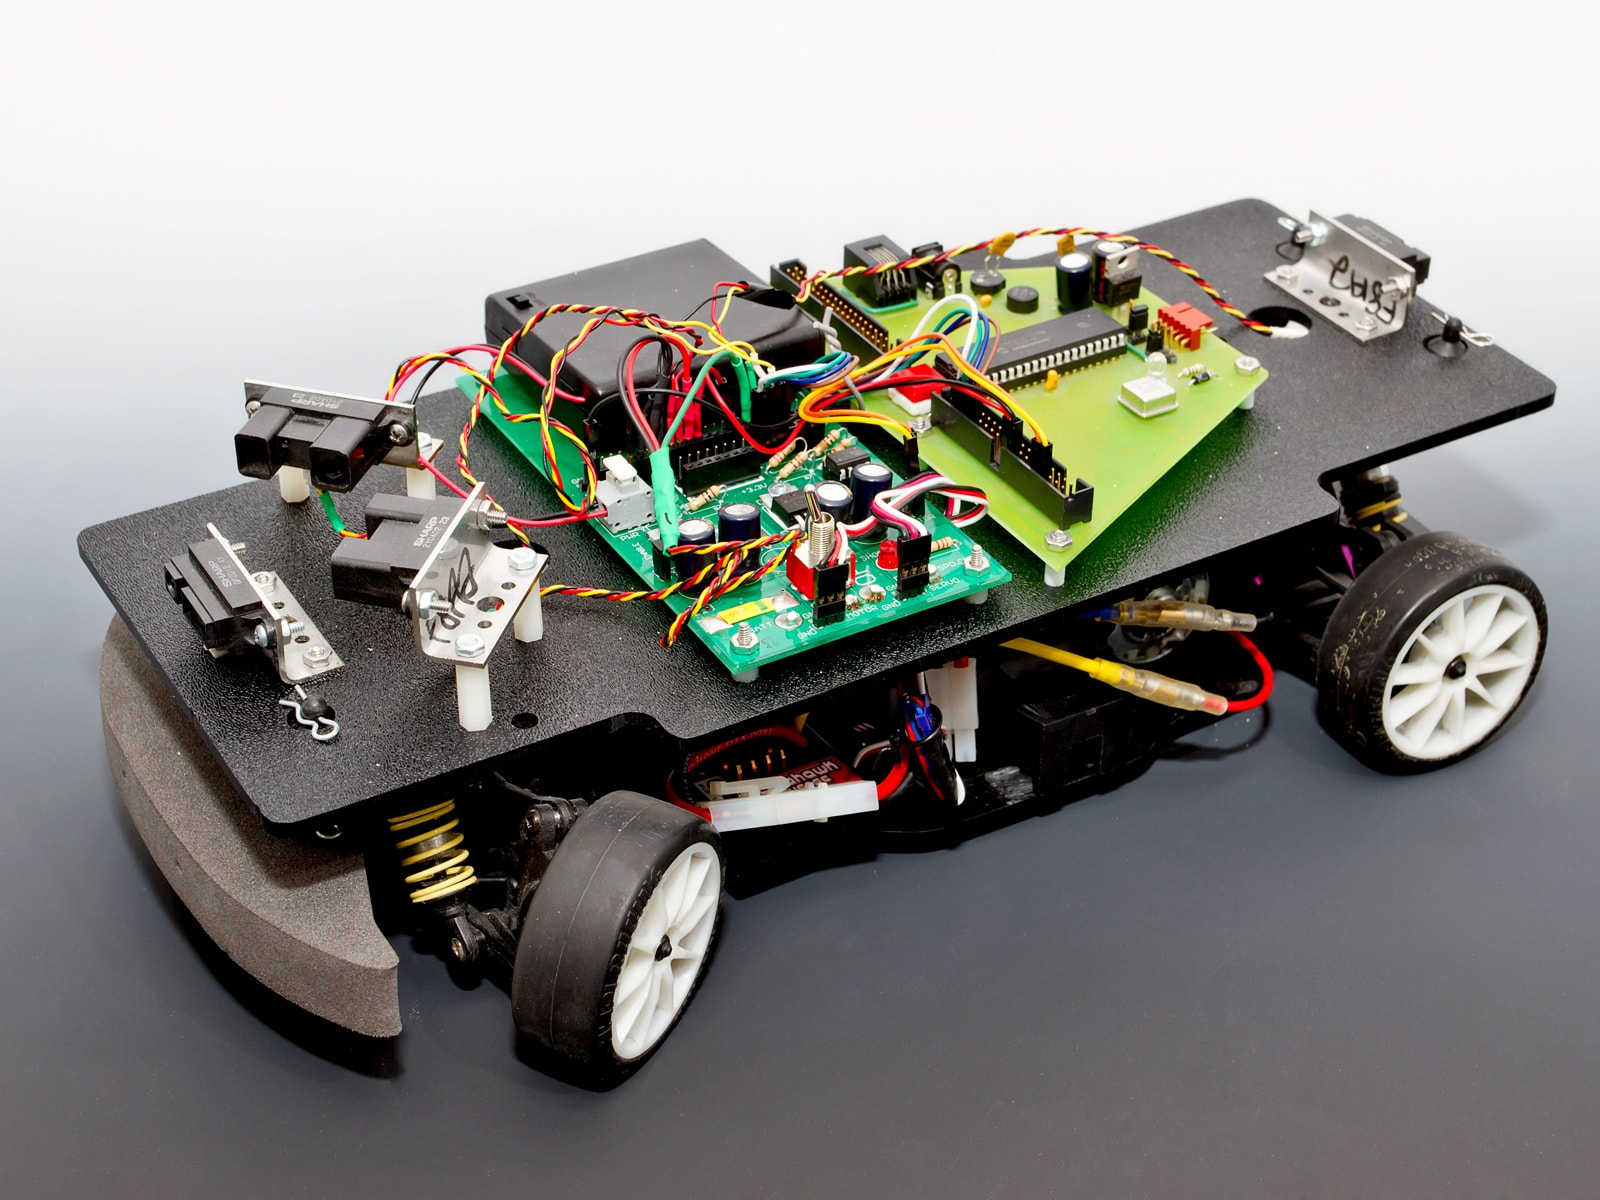 A four wheeled car with infrared sensors and exposed circuitry.